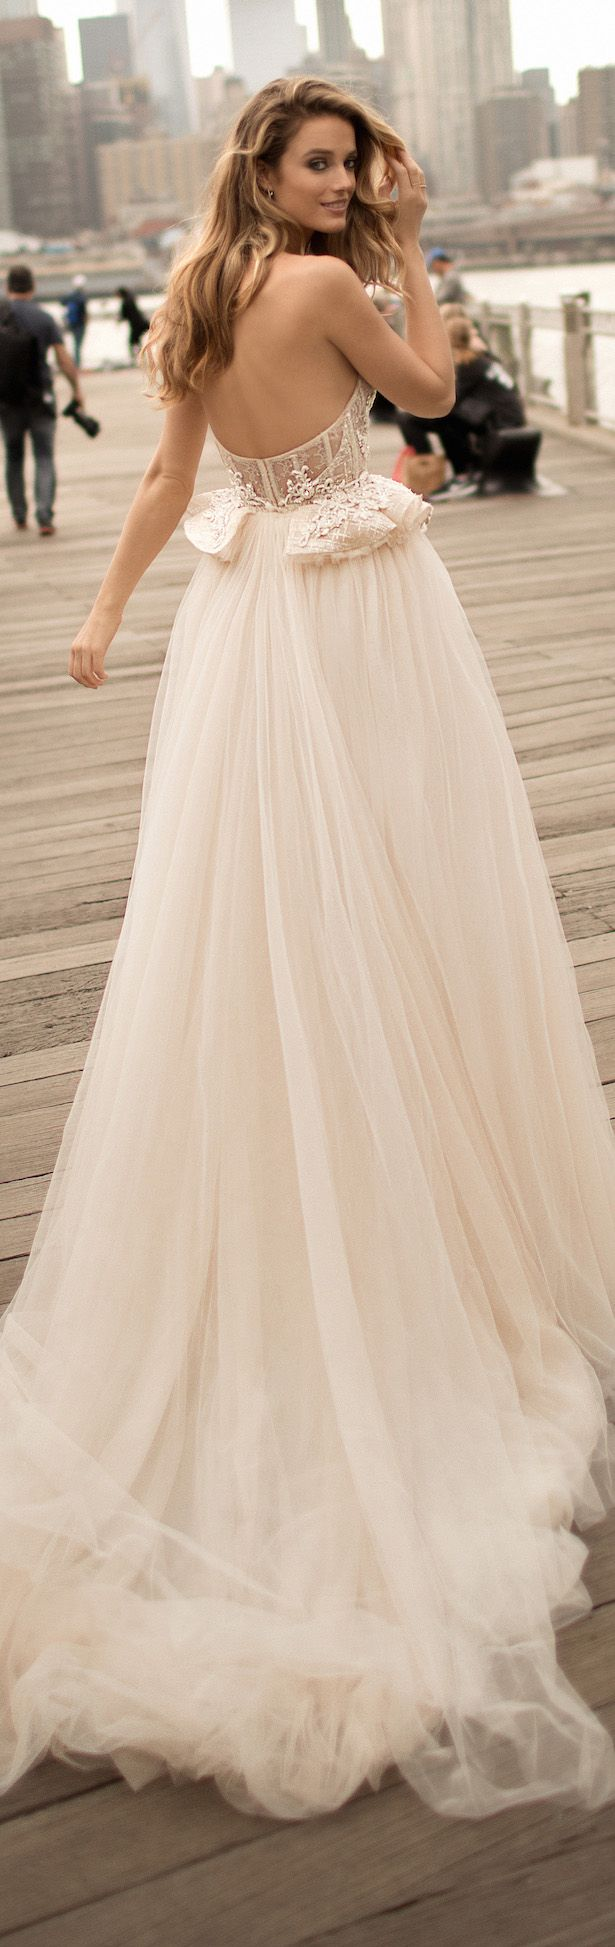 Berta wedding dress collection spring dress collection